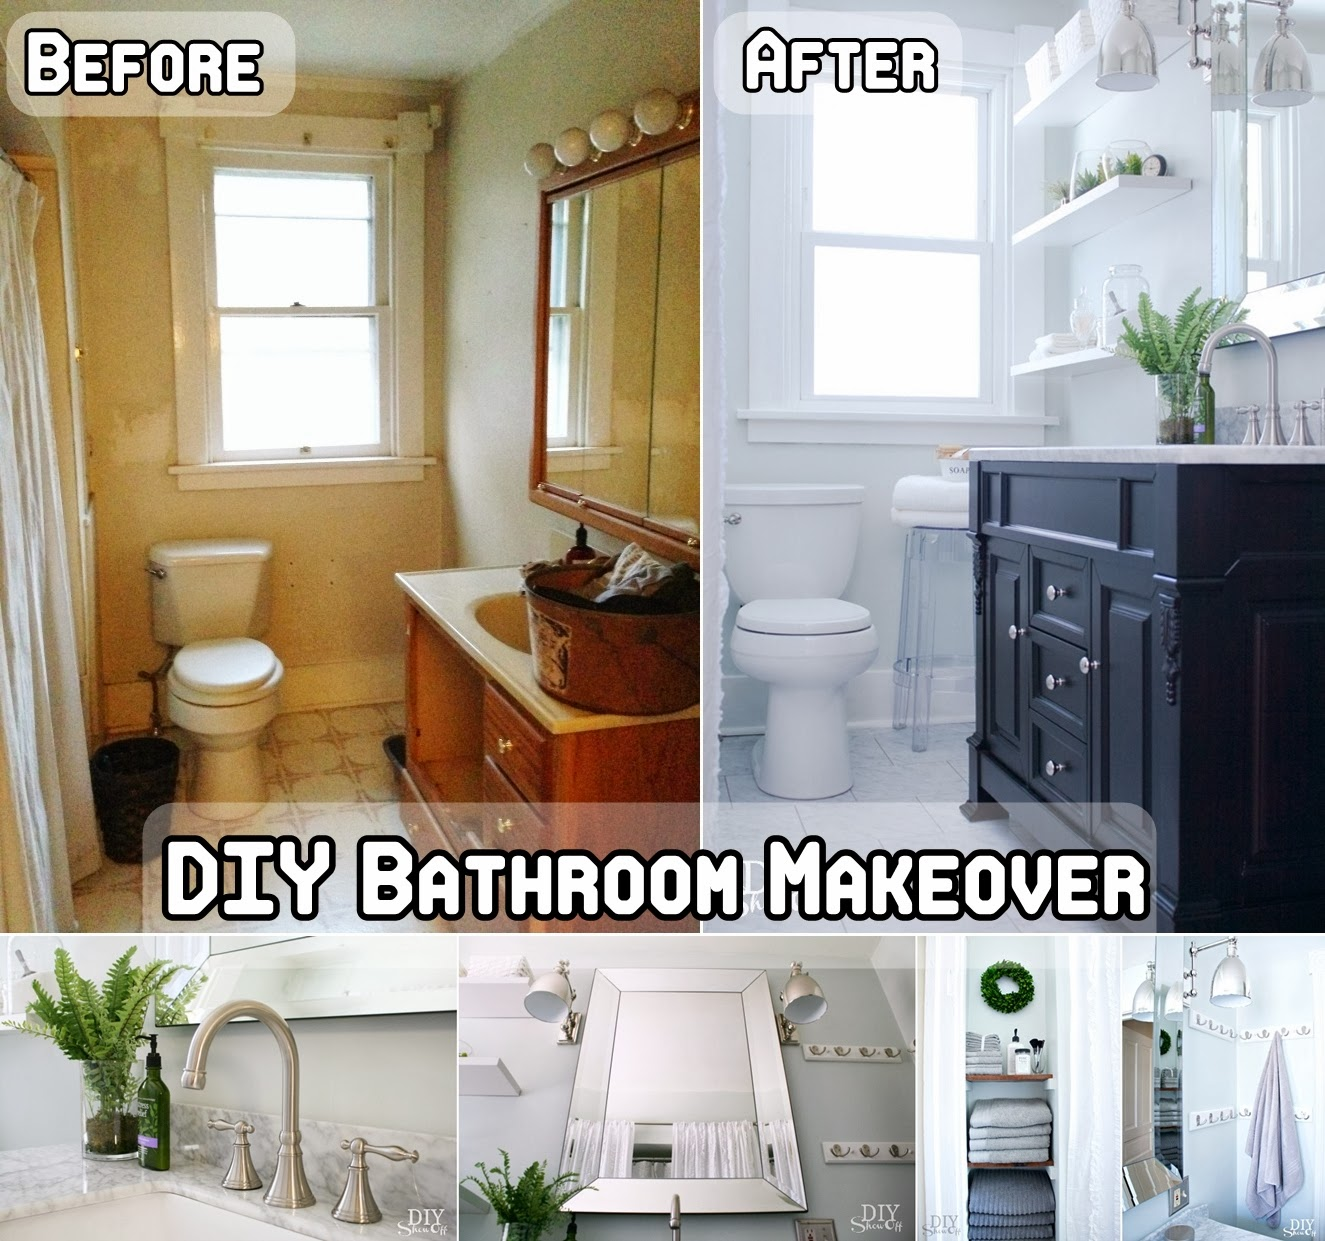 Pinterest Diy Bathroom Decor Ask Home Design